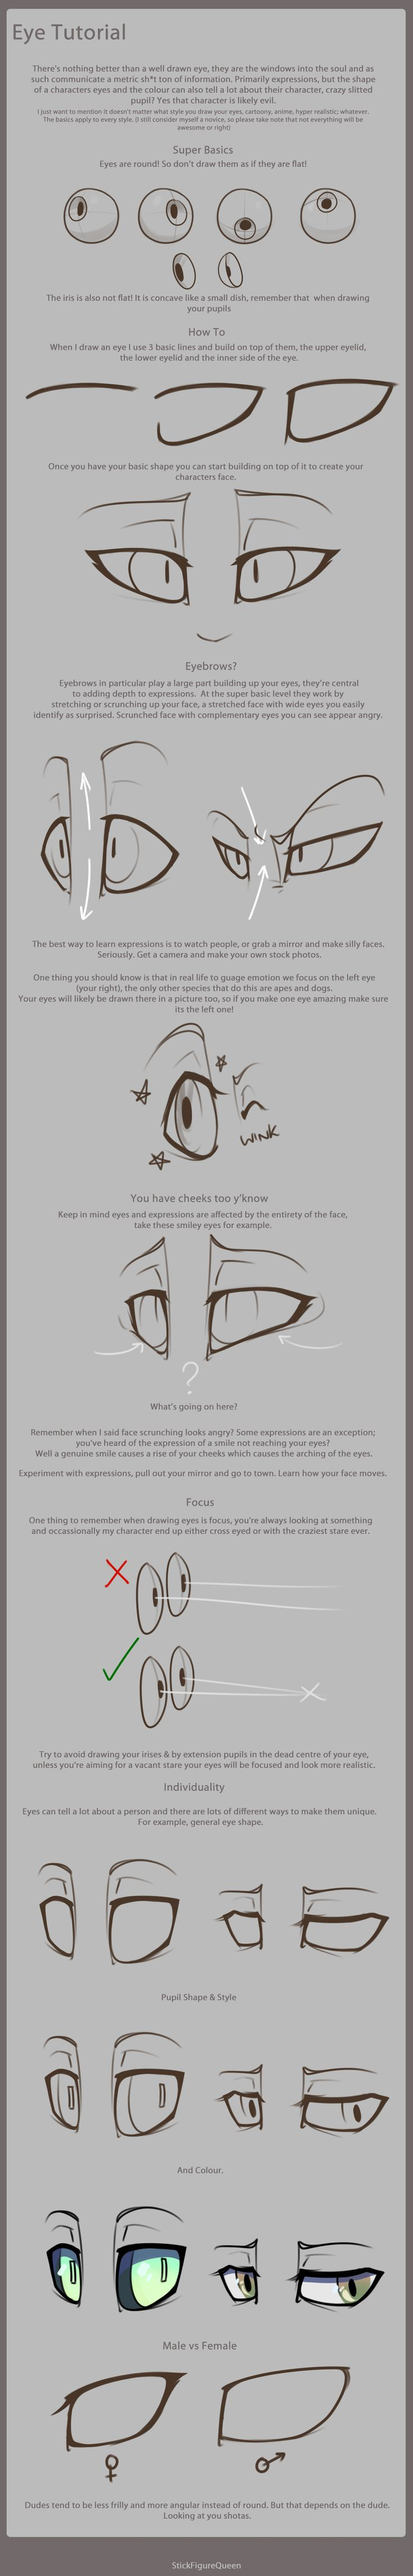 Eye Tutorial by StickFigureQueen.deviantart.com on @deviantART|  ho, the humorous tutorials tend to be some of the best.